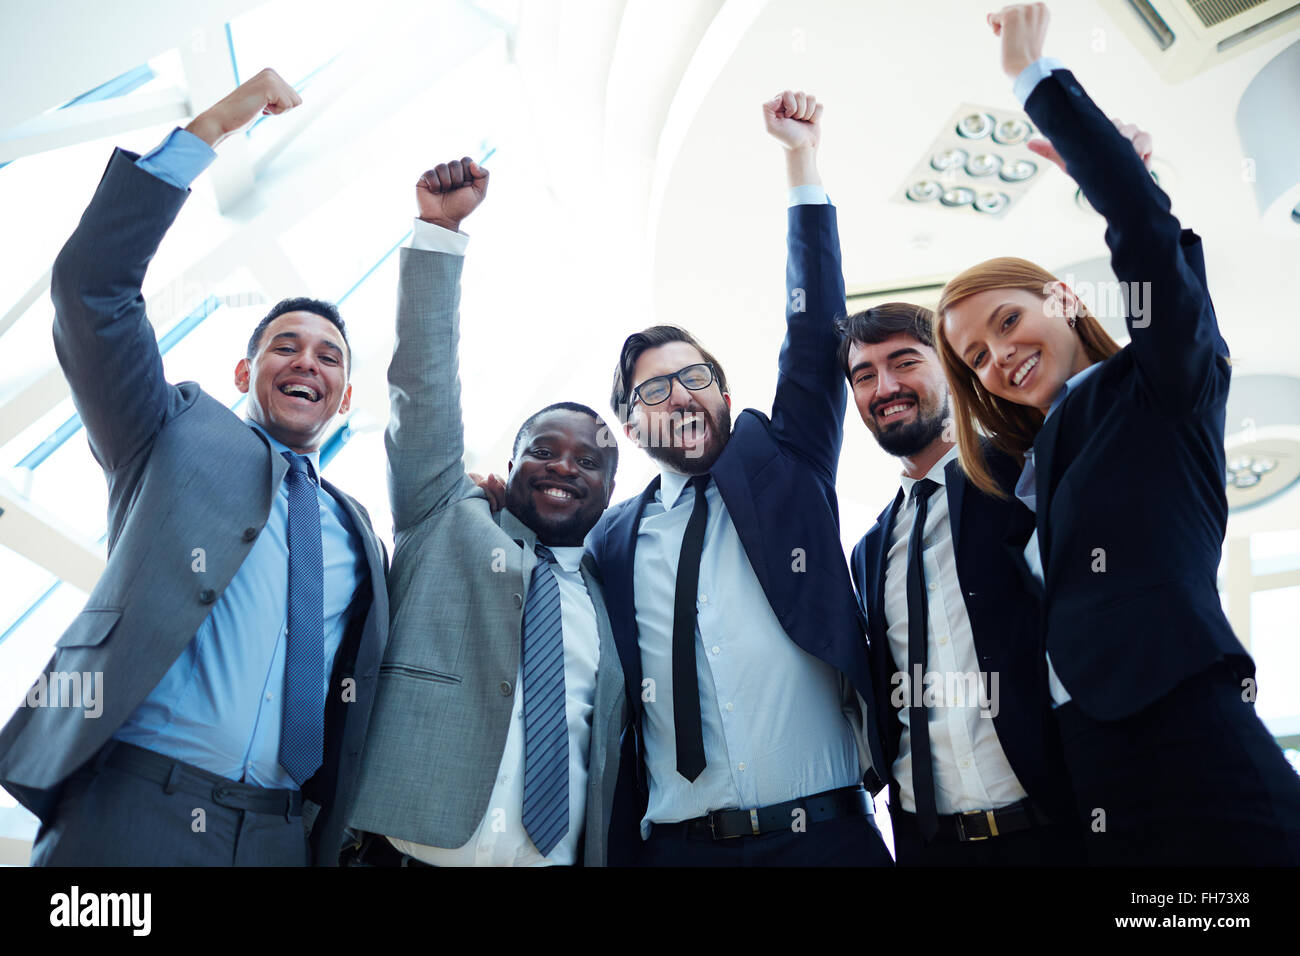 Ecstatic business partners in suits raising their arms and expressing triumph - Stock Image